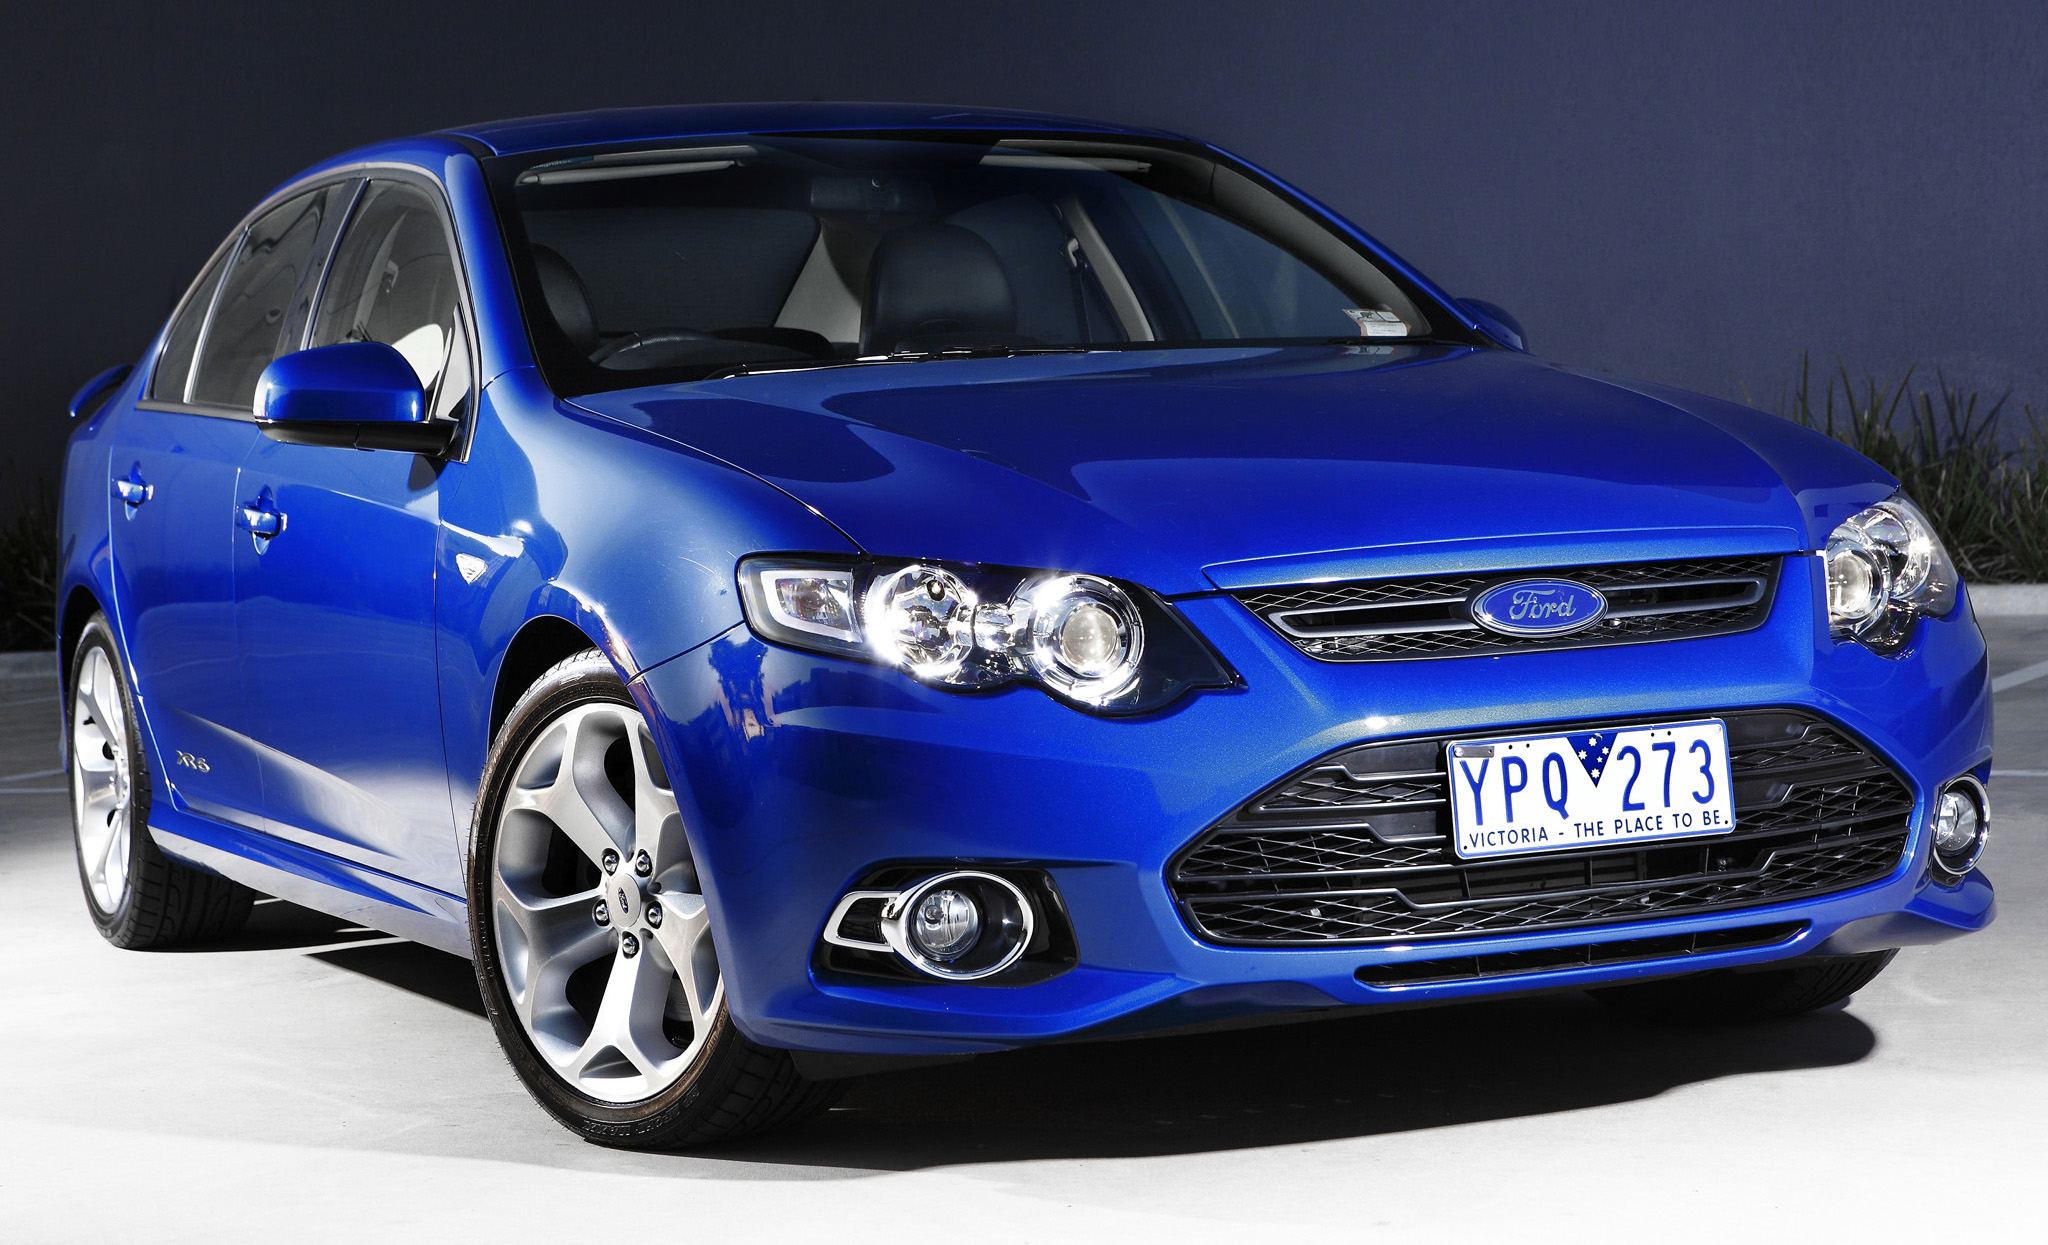 252134306102 moreover Showthread moreover Ford FG Falcon 20Turbo as well Full Feature Ls1 Powered Xw Fairmont Gs as well 1088318 ford To Relaunch Falcon Xr8 In Australia While Winding Up Fpv Performance Division. on ford falcon xr6